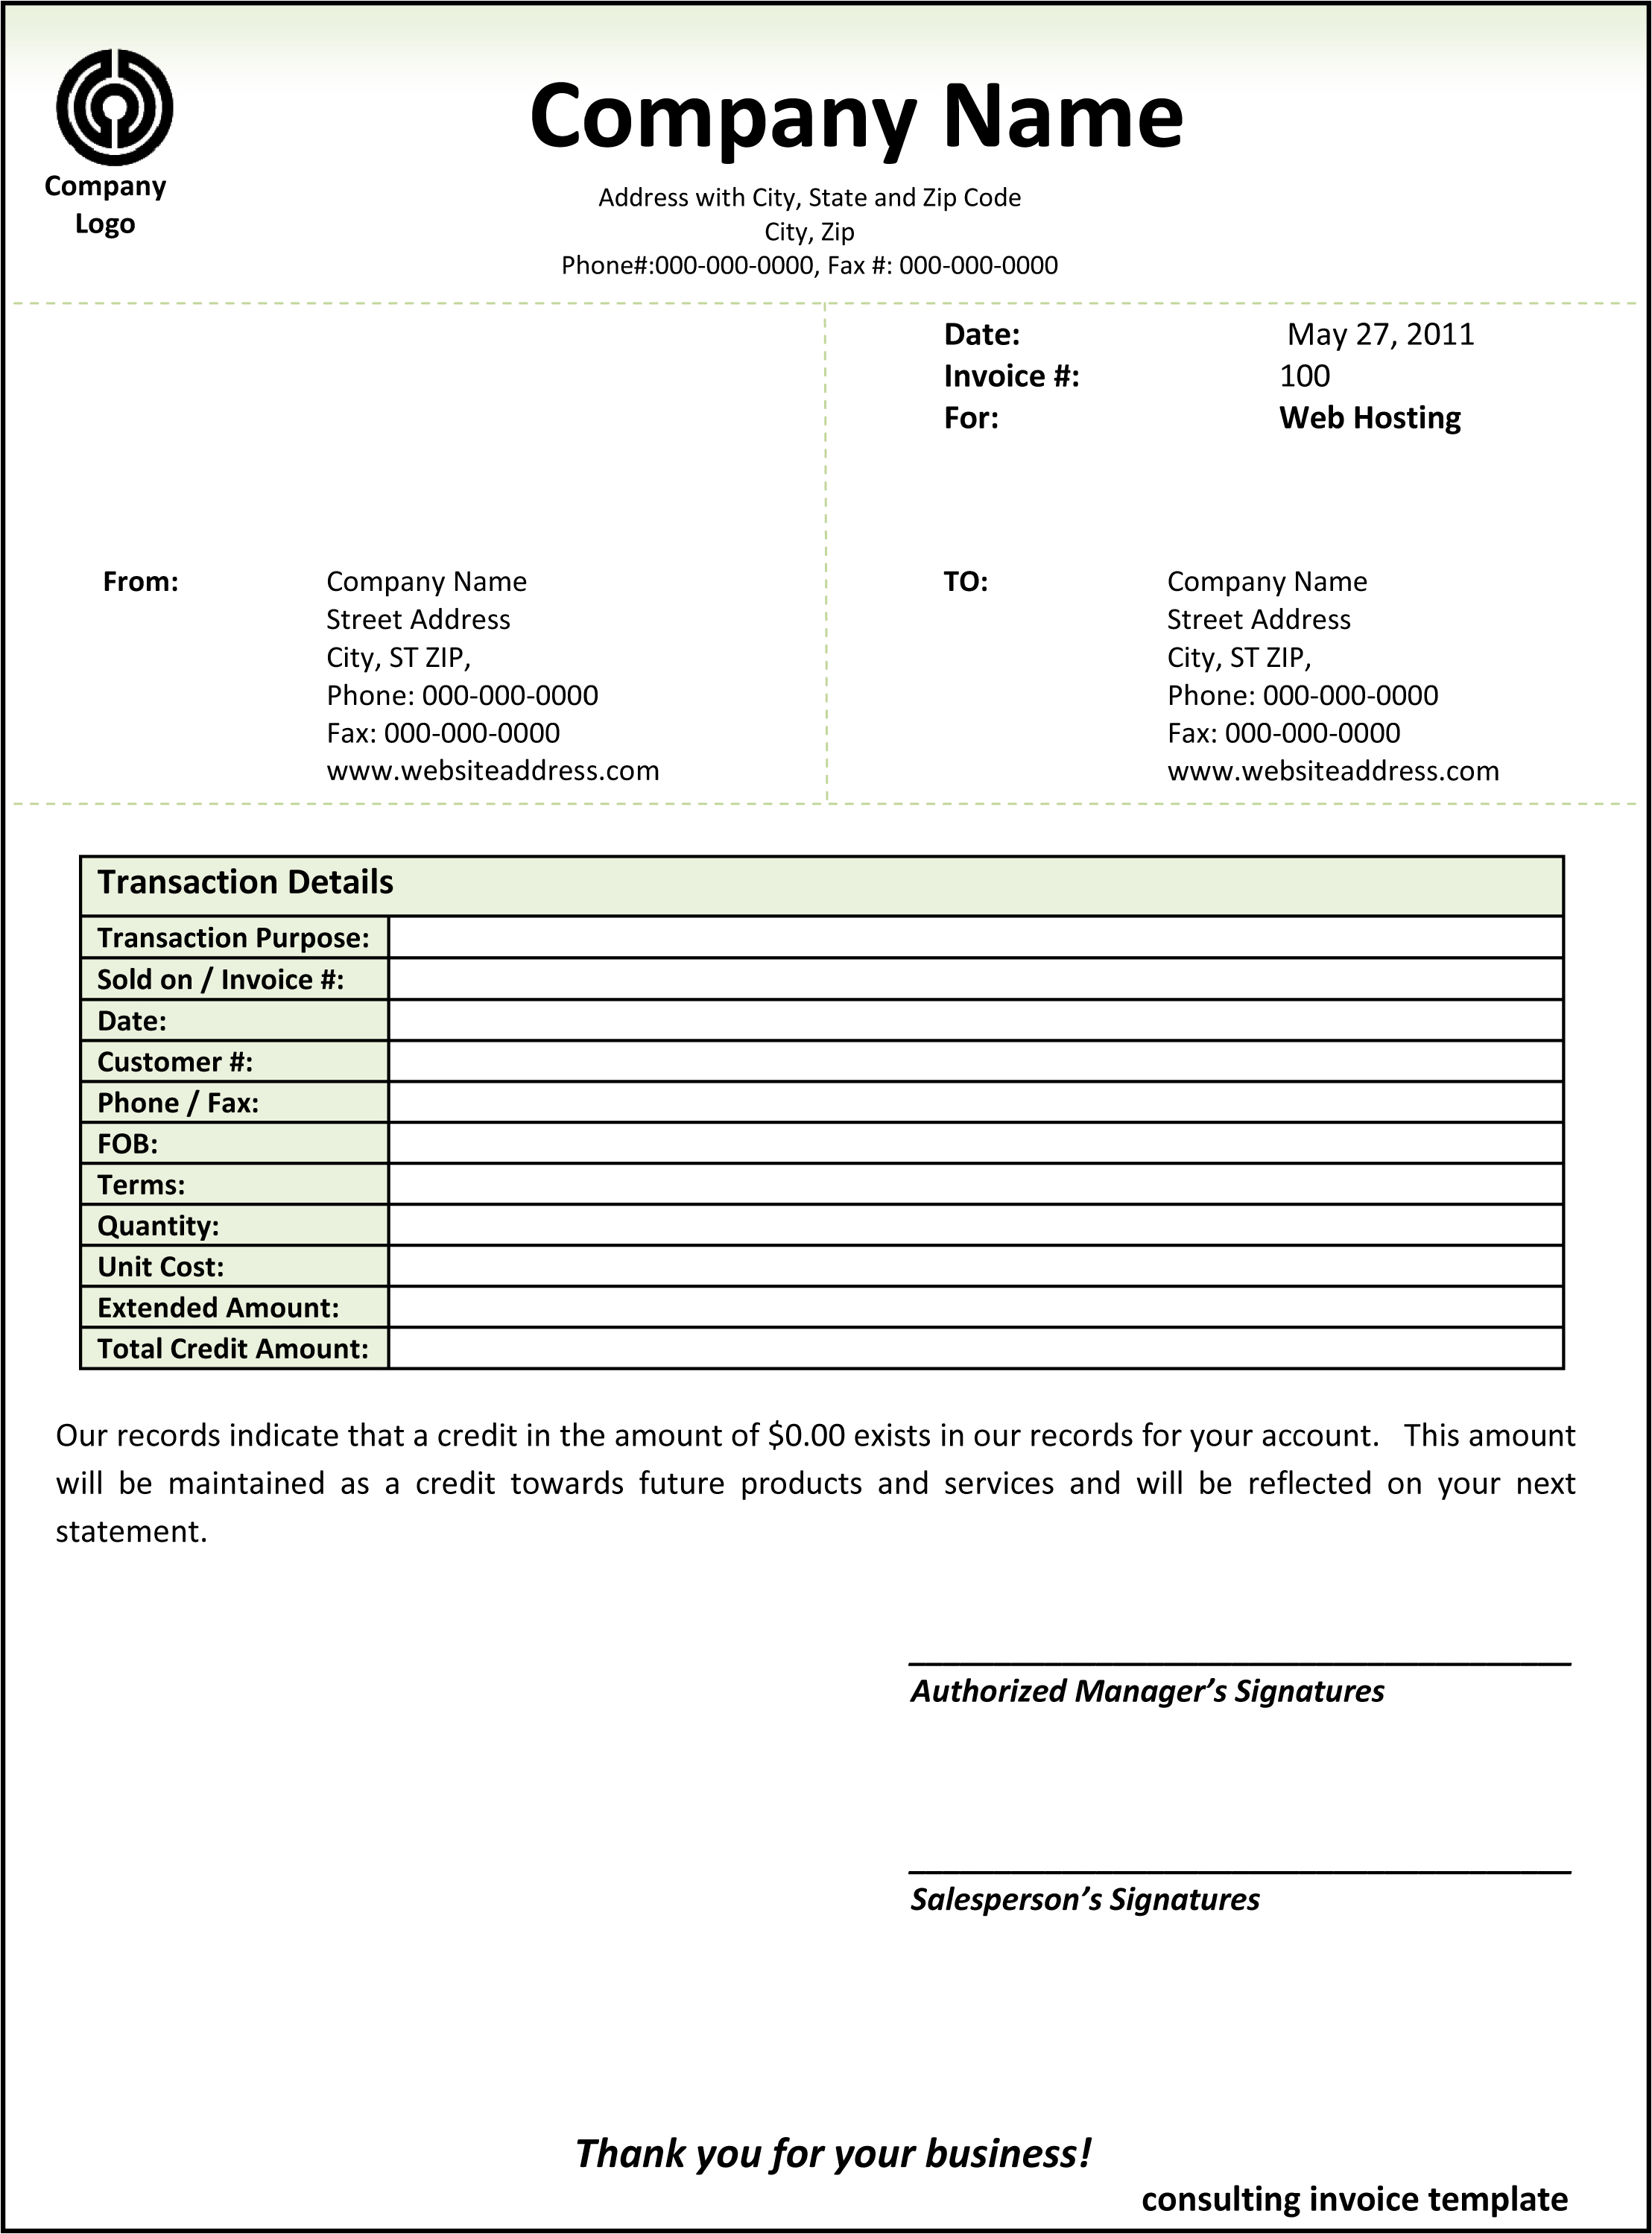 Consulting Invoice Template Word | invoice example